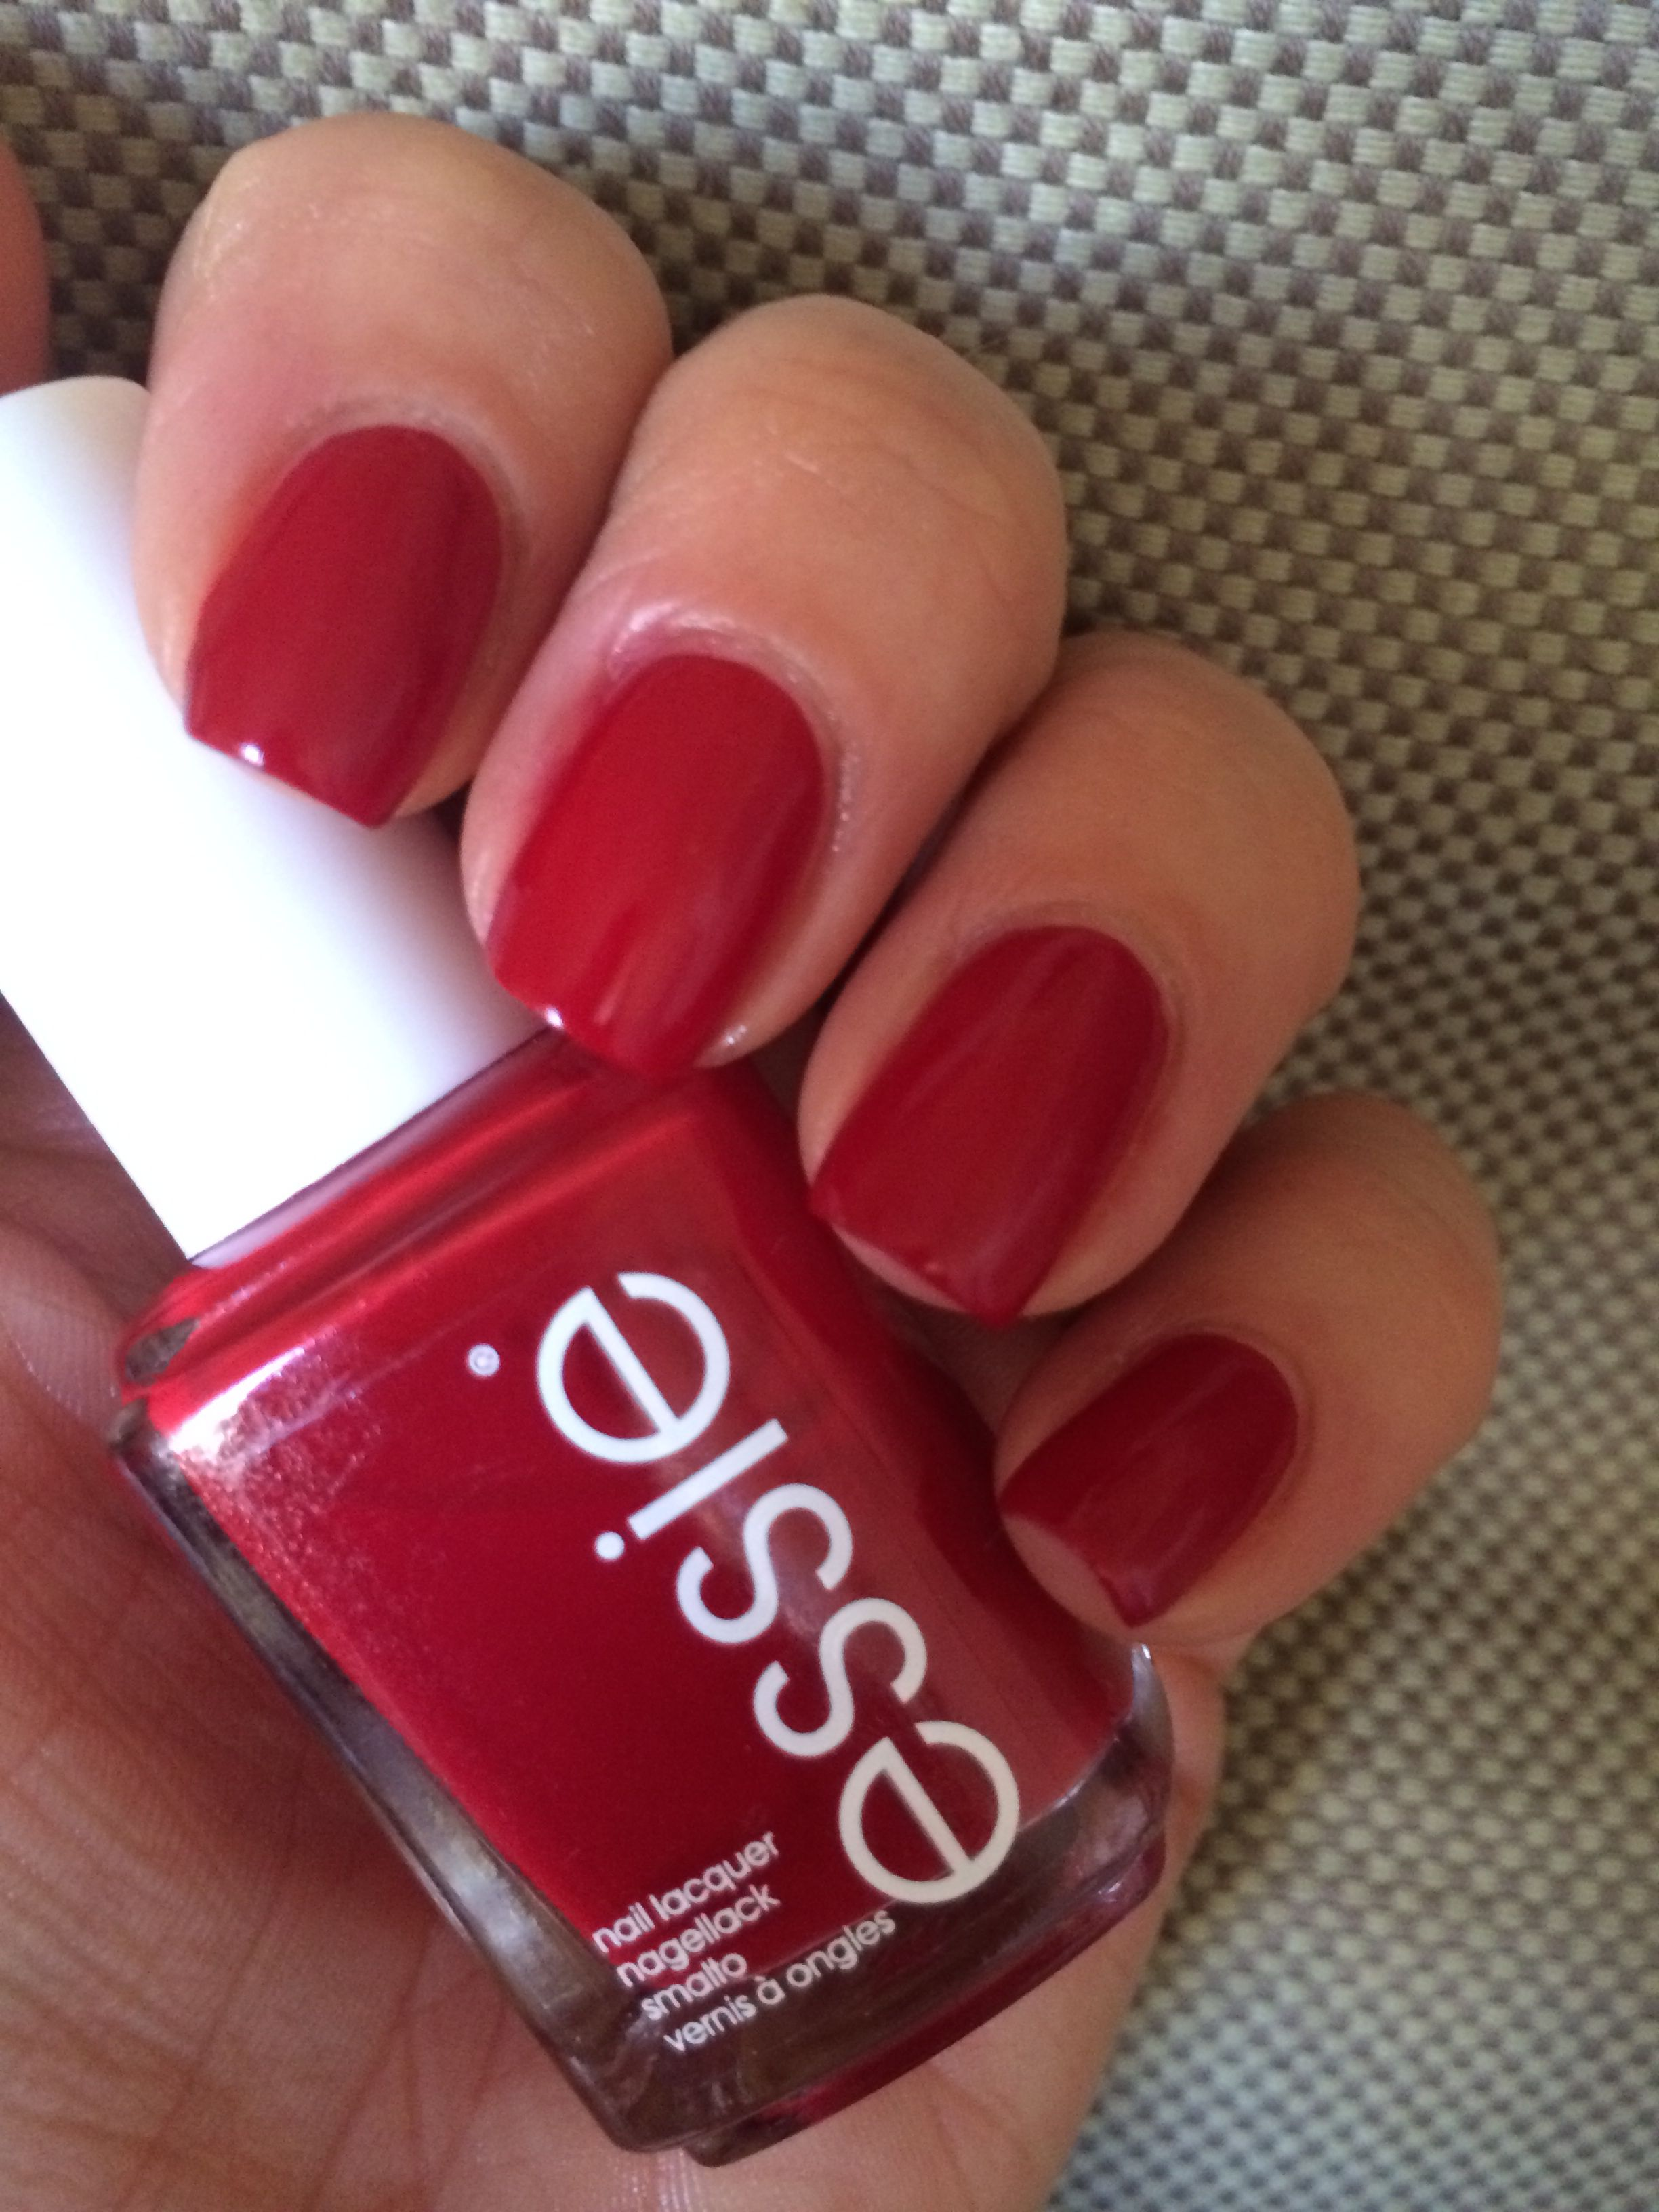 Essie Forever yummy (2 coats) + Mavala Colorfix + Top coat Nails inc ...